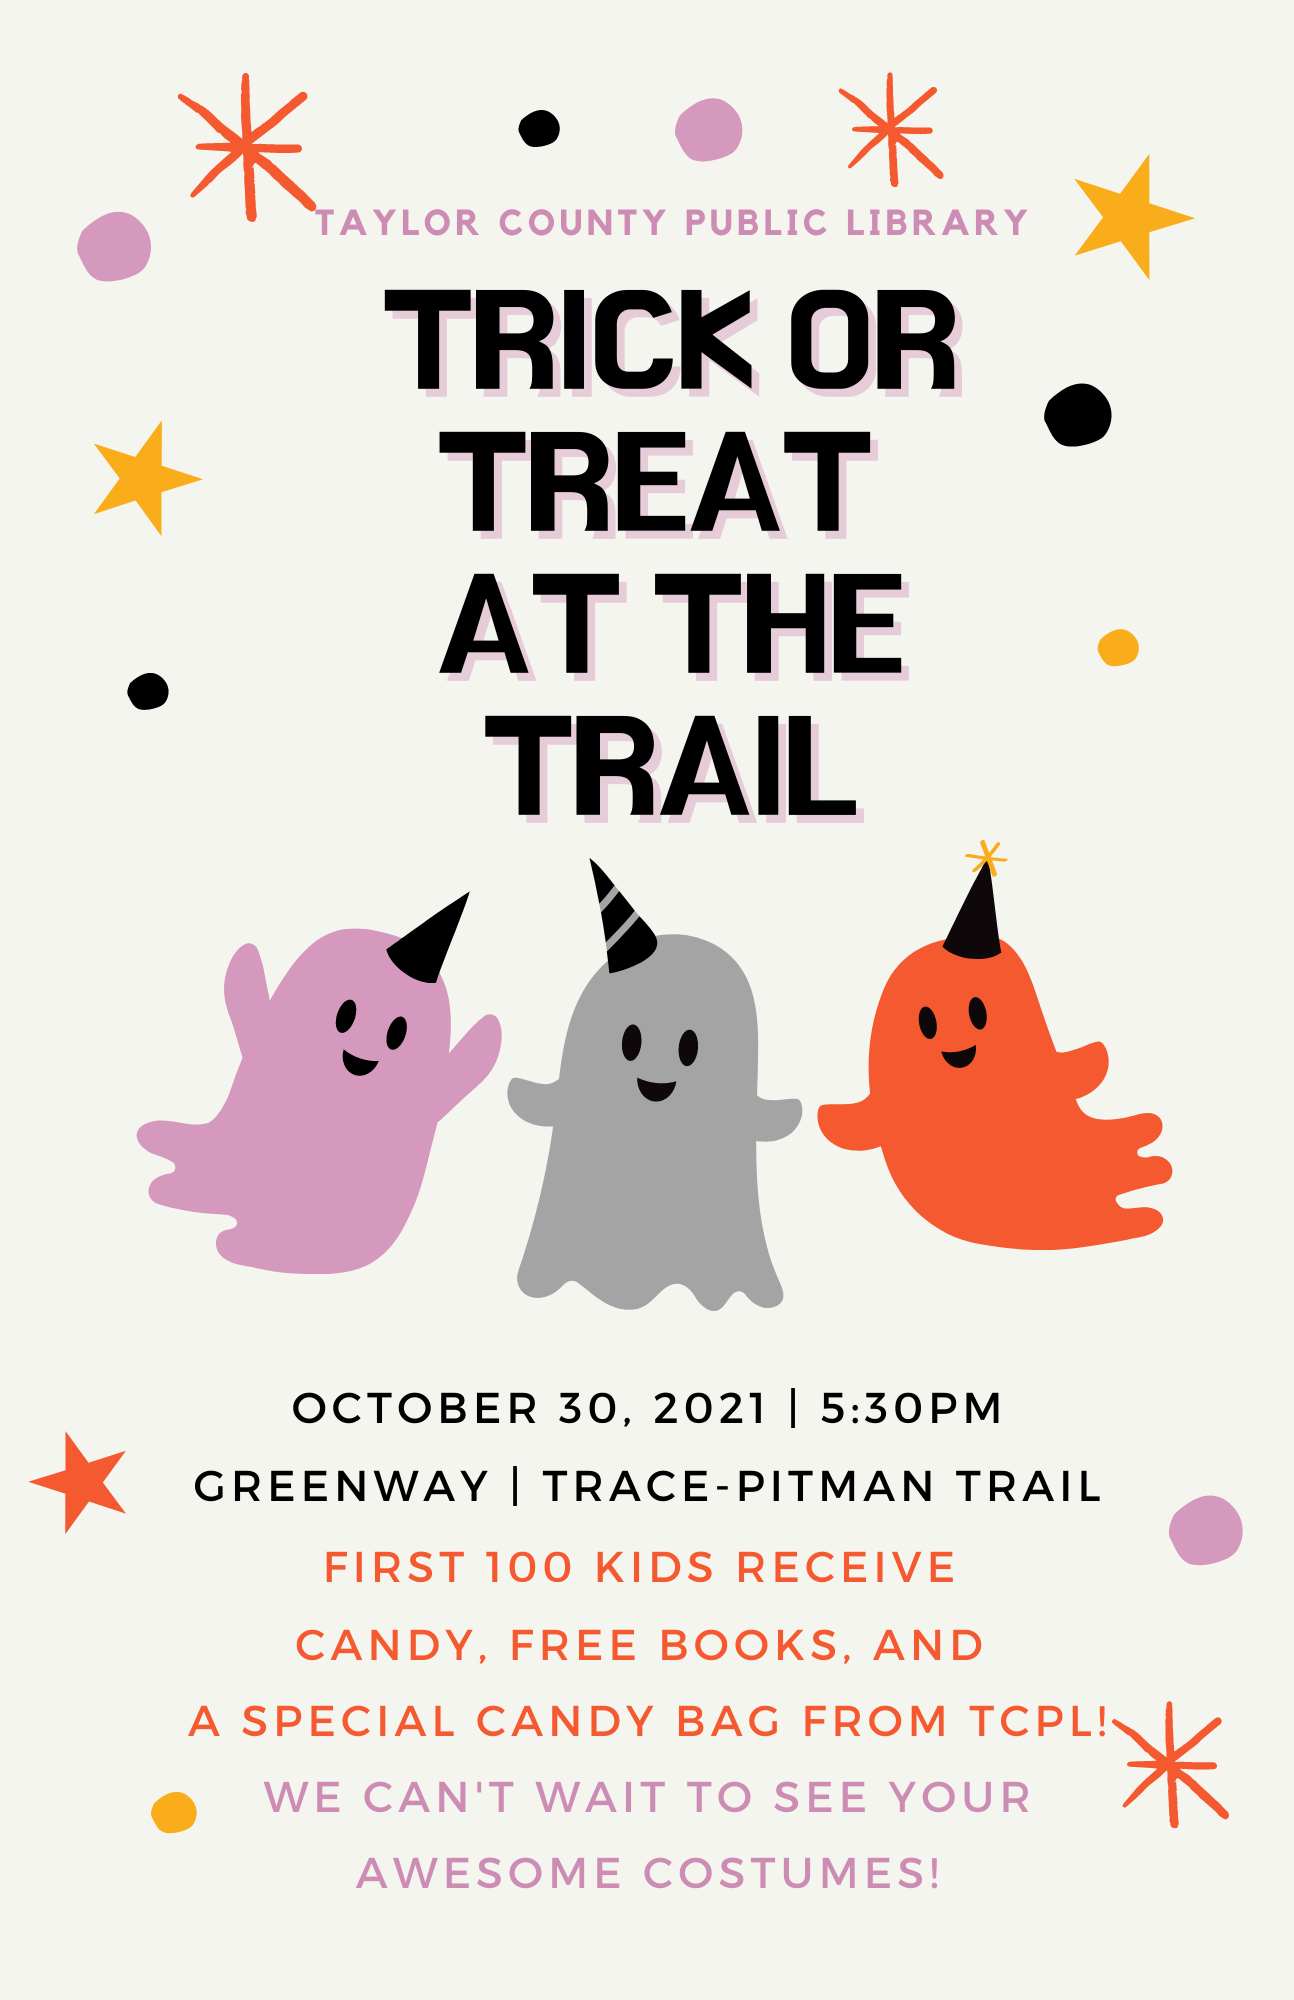 Trick or Treat at the Trail